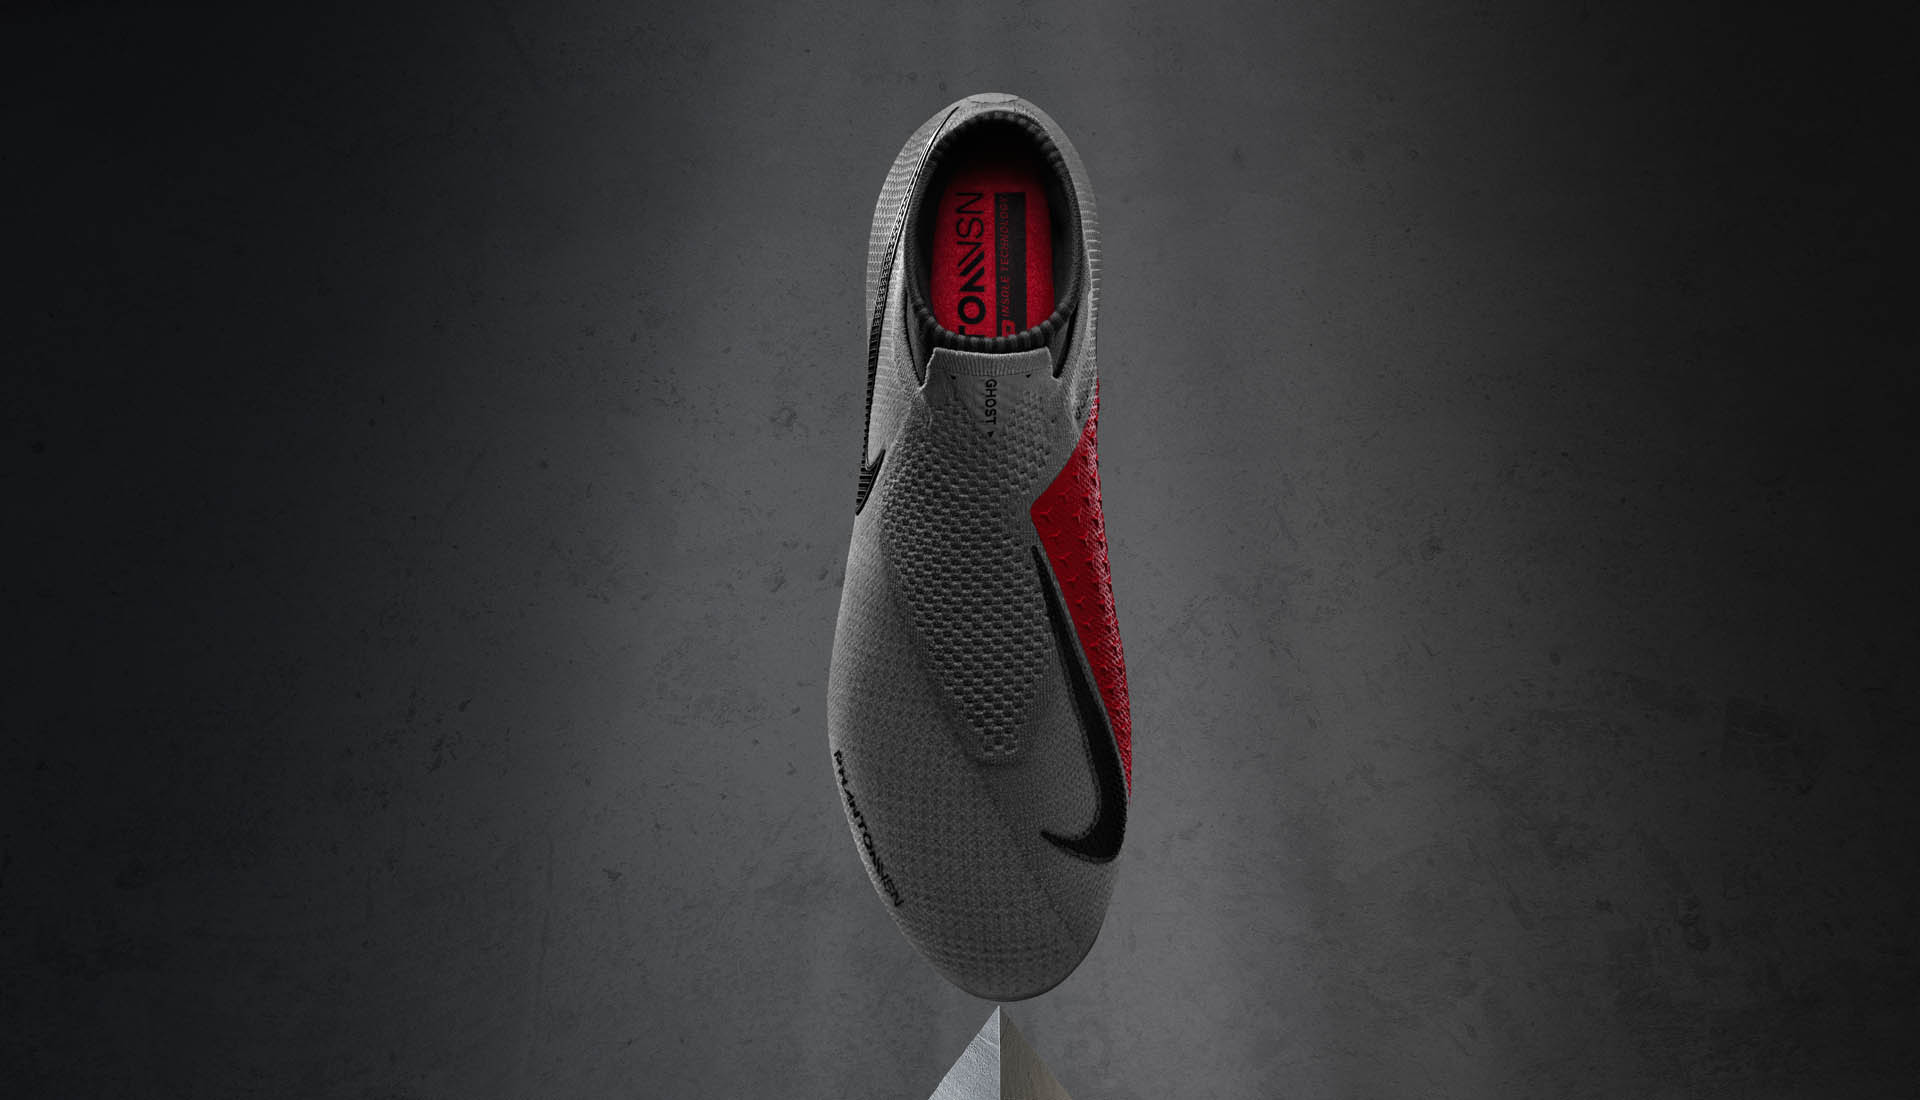 e797b48e1 Nike Launch The PhantomVSN - SoccerBible